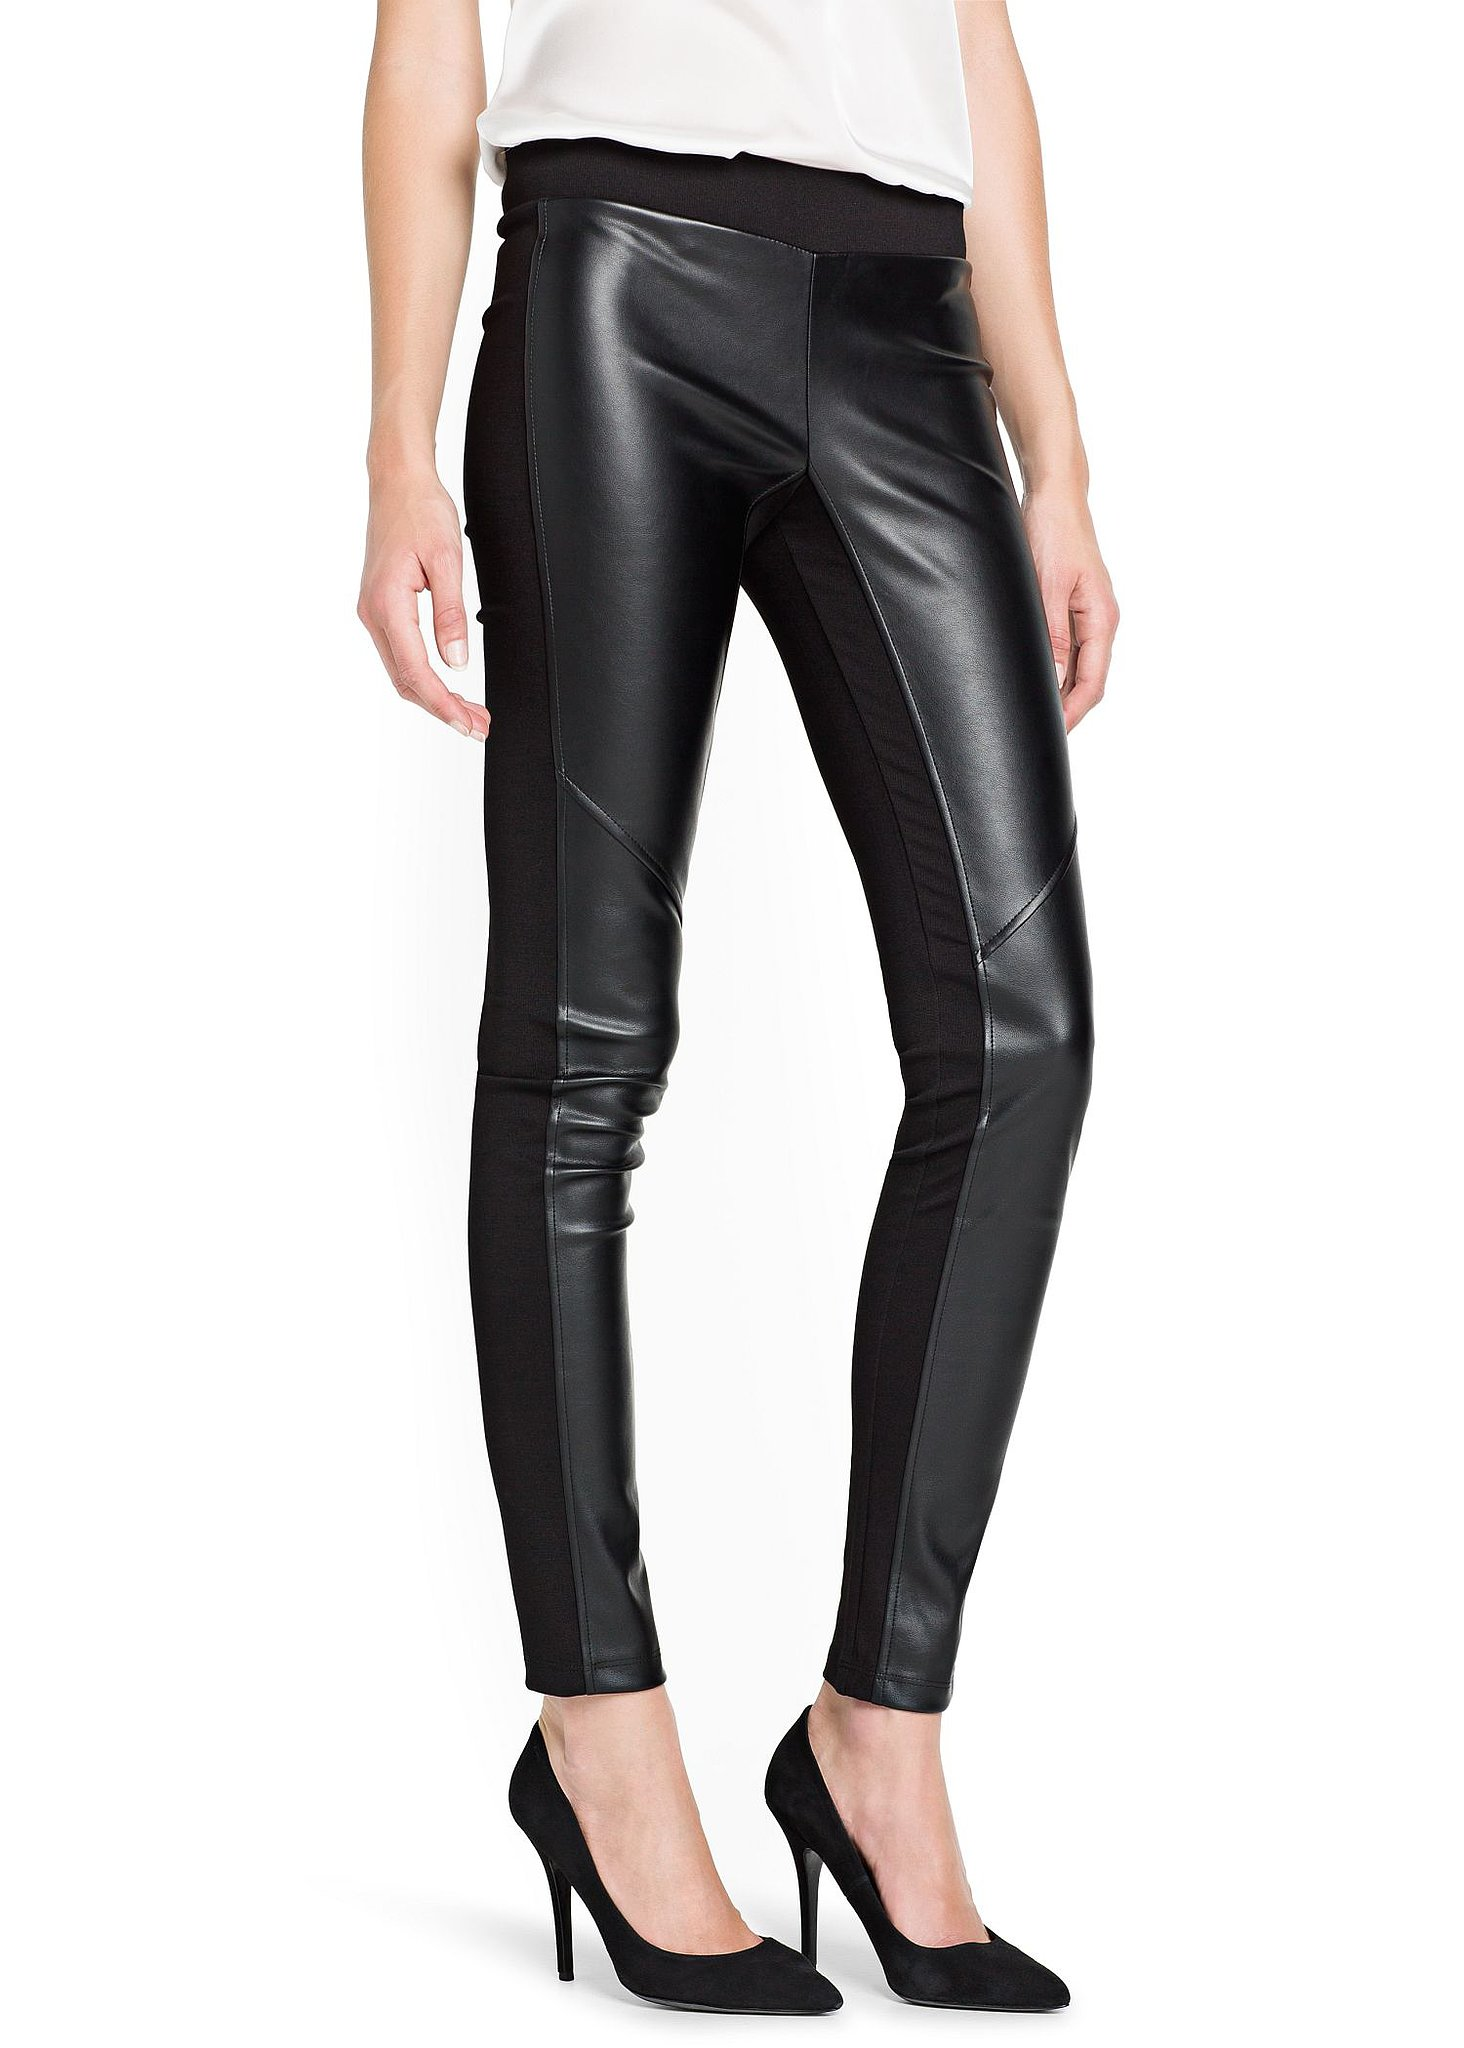 Worried that leather leggings won't be comfortable? Try Mango's paneled pair ($45) that has a softer fabric in